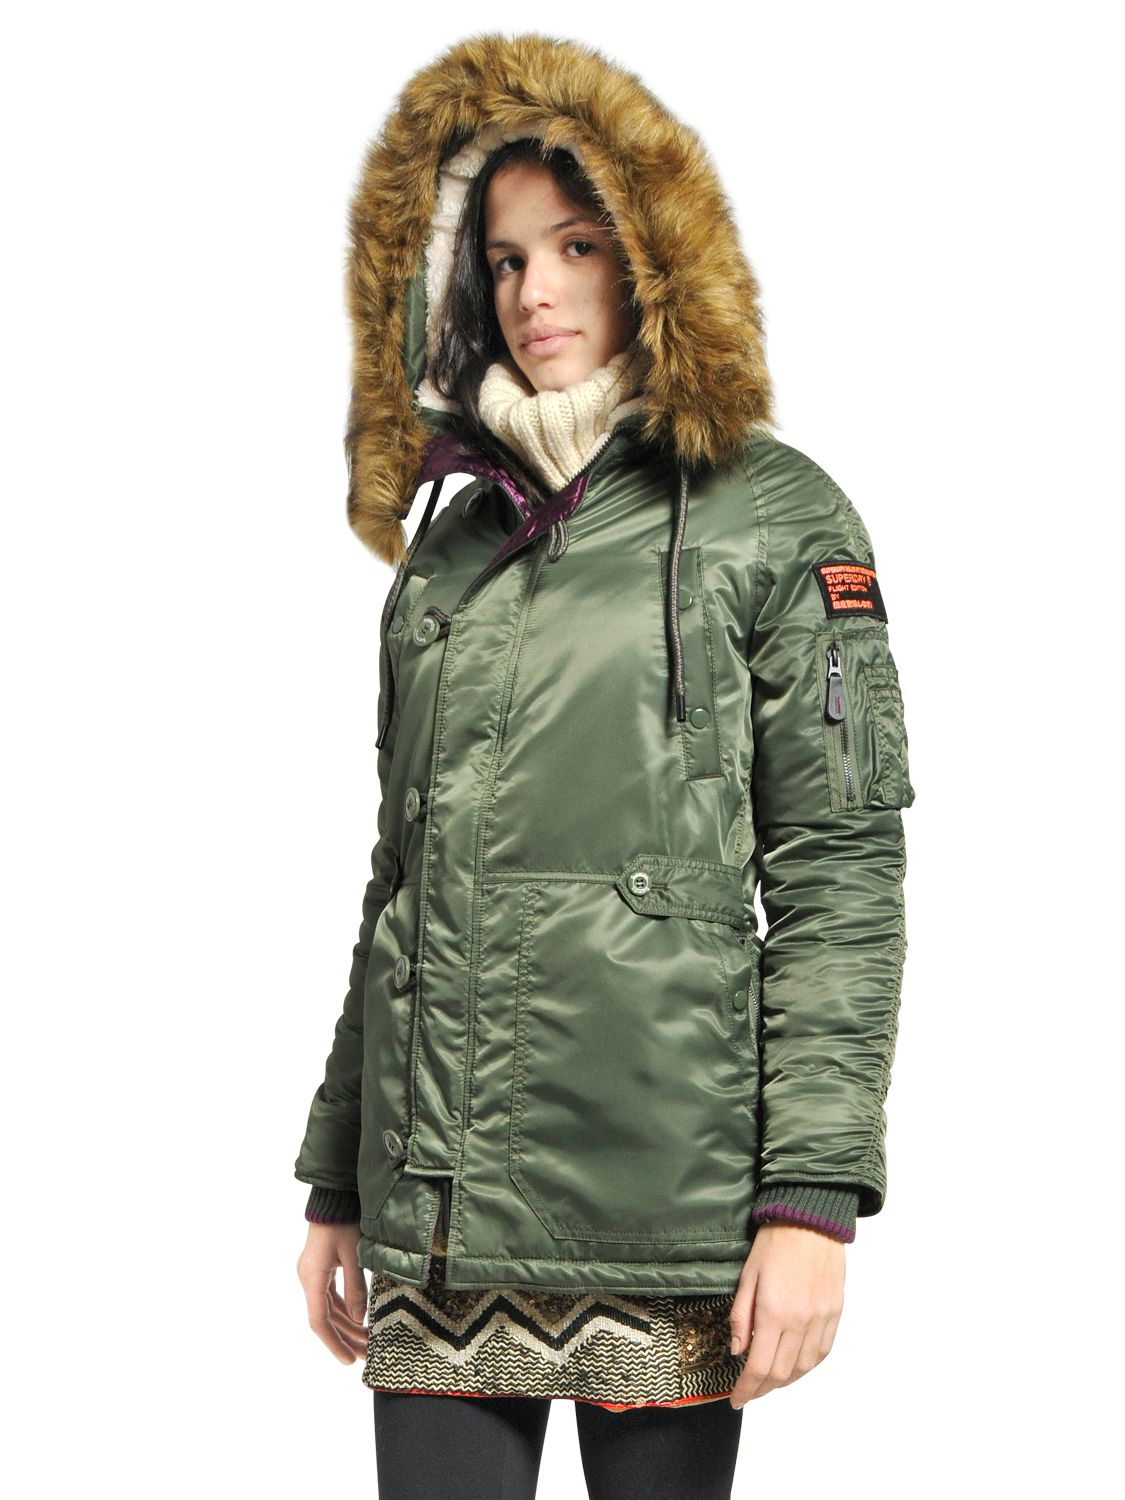 Parka Jacket Womens Sale Jackets Review